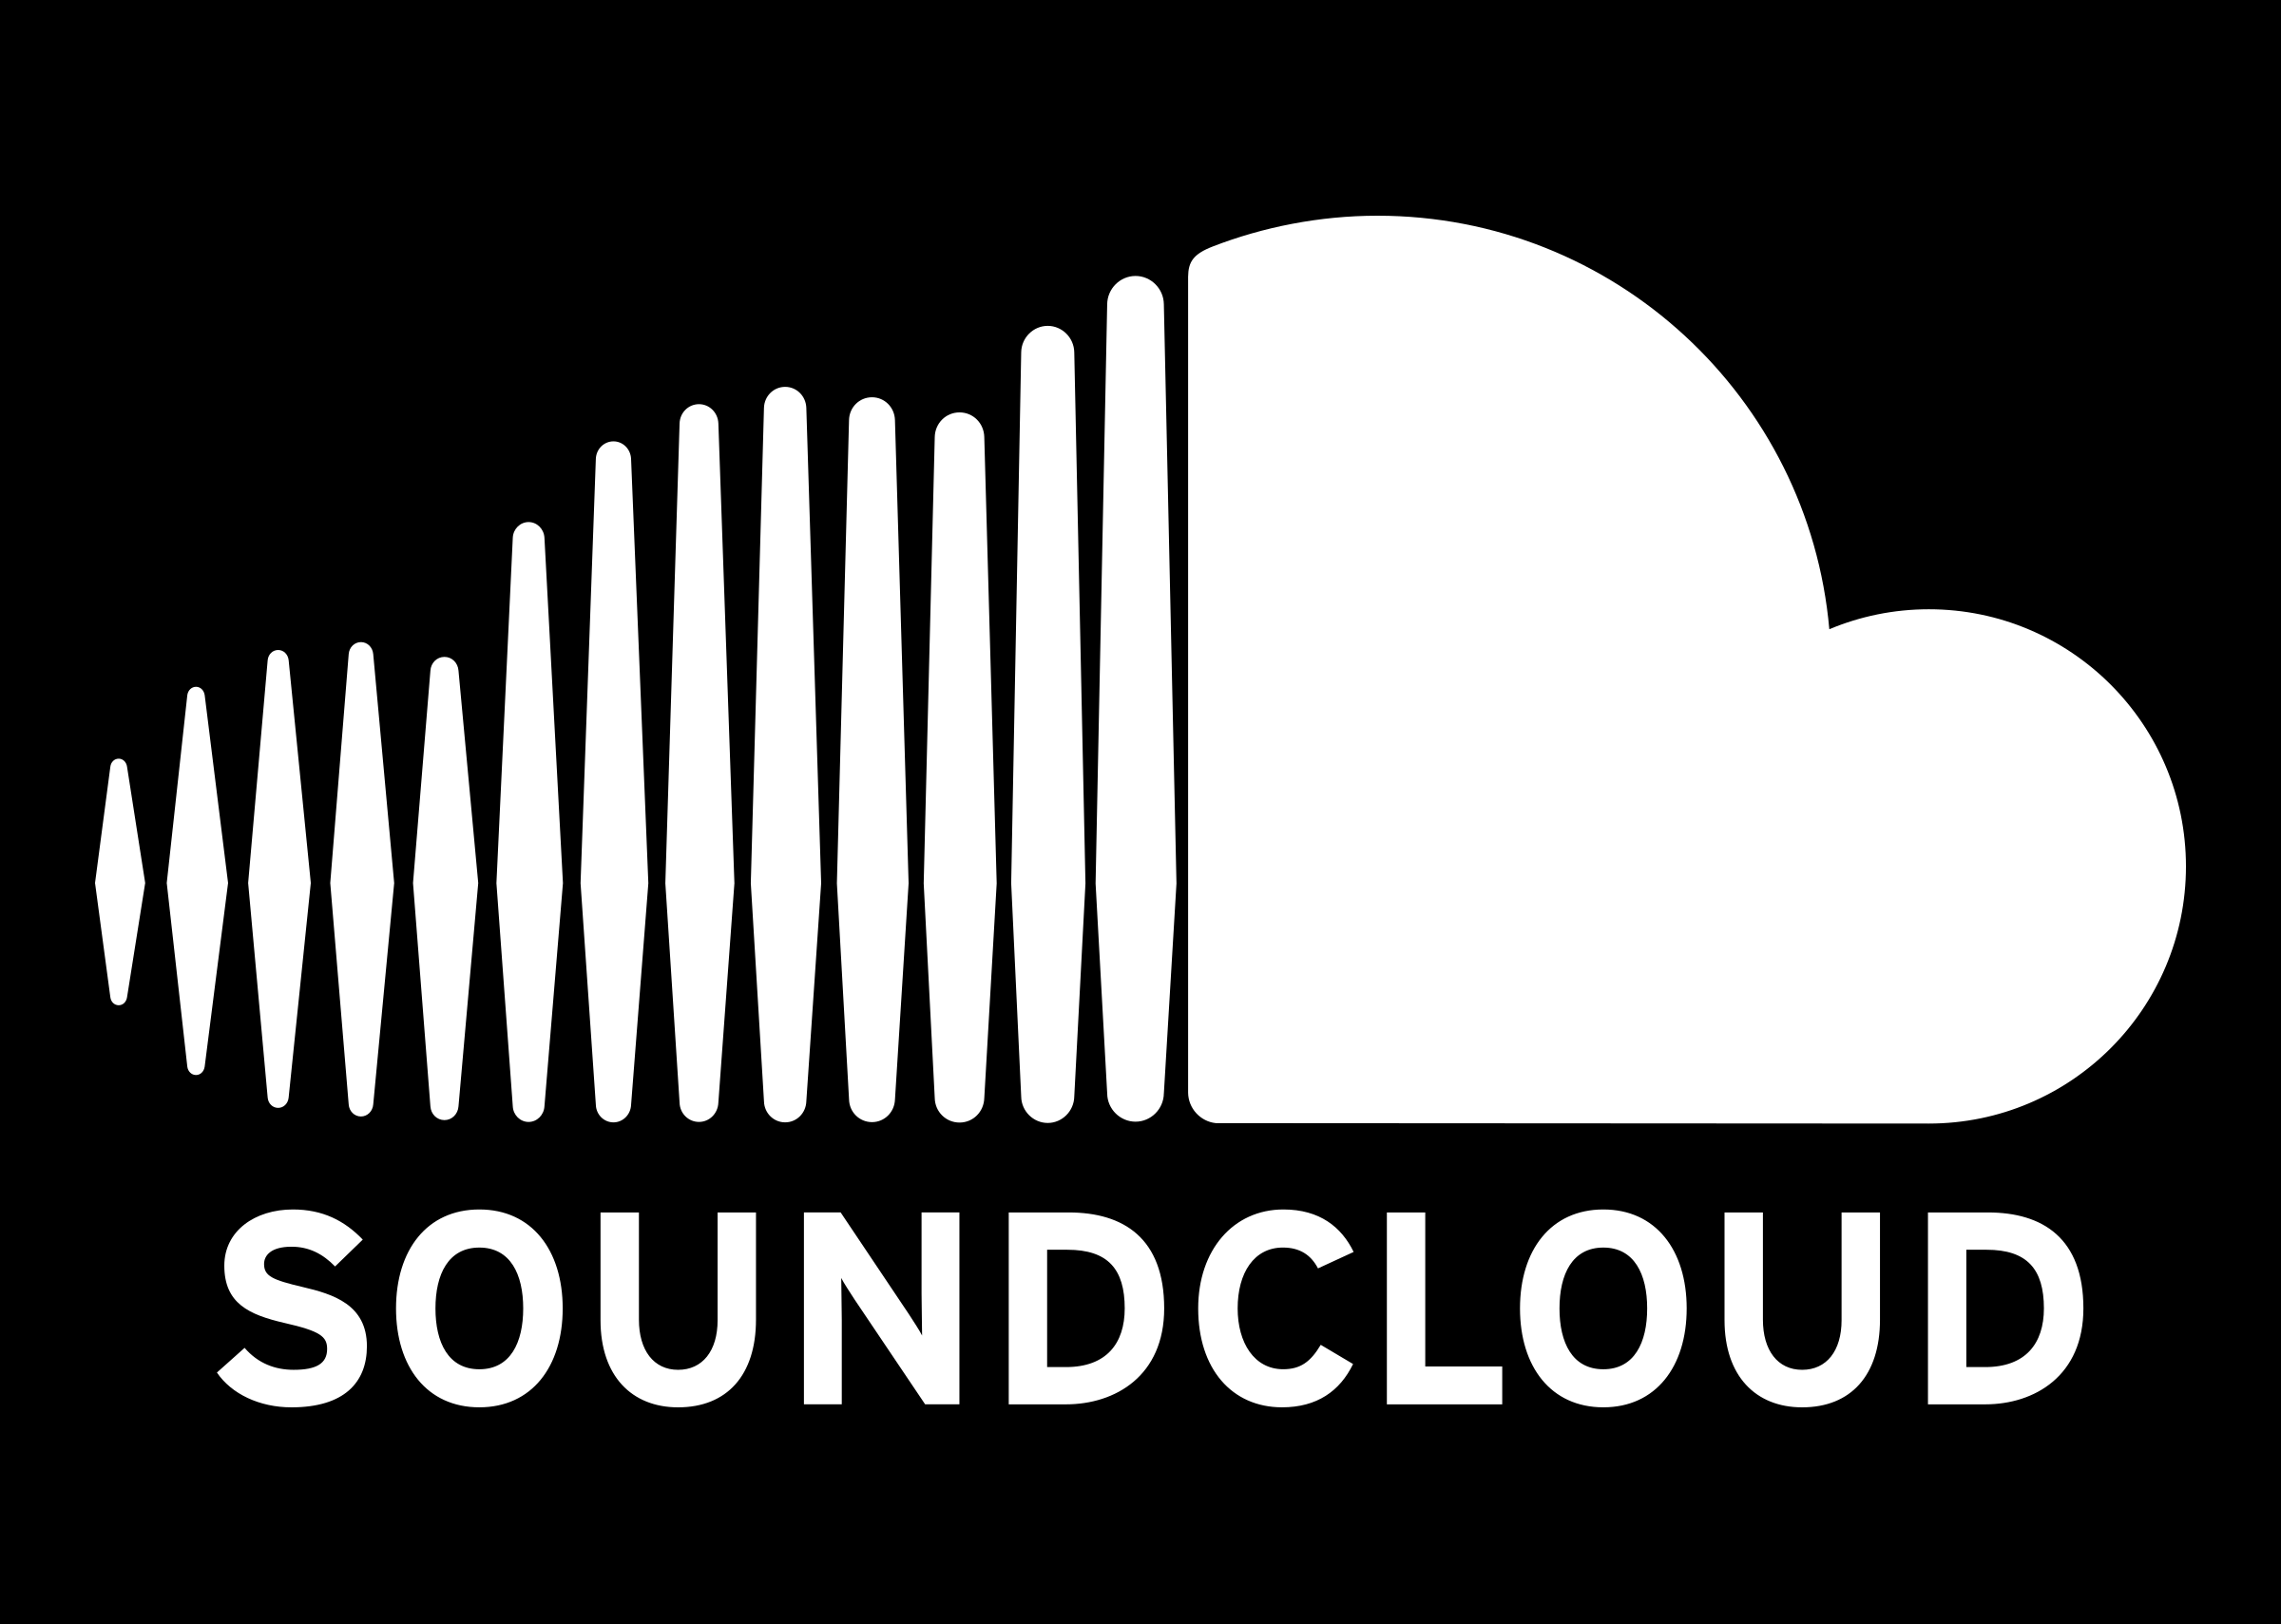 SoundCloud Logo PNG Transparent & SVG Vector.